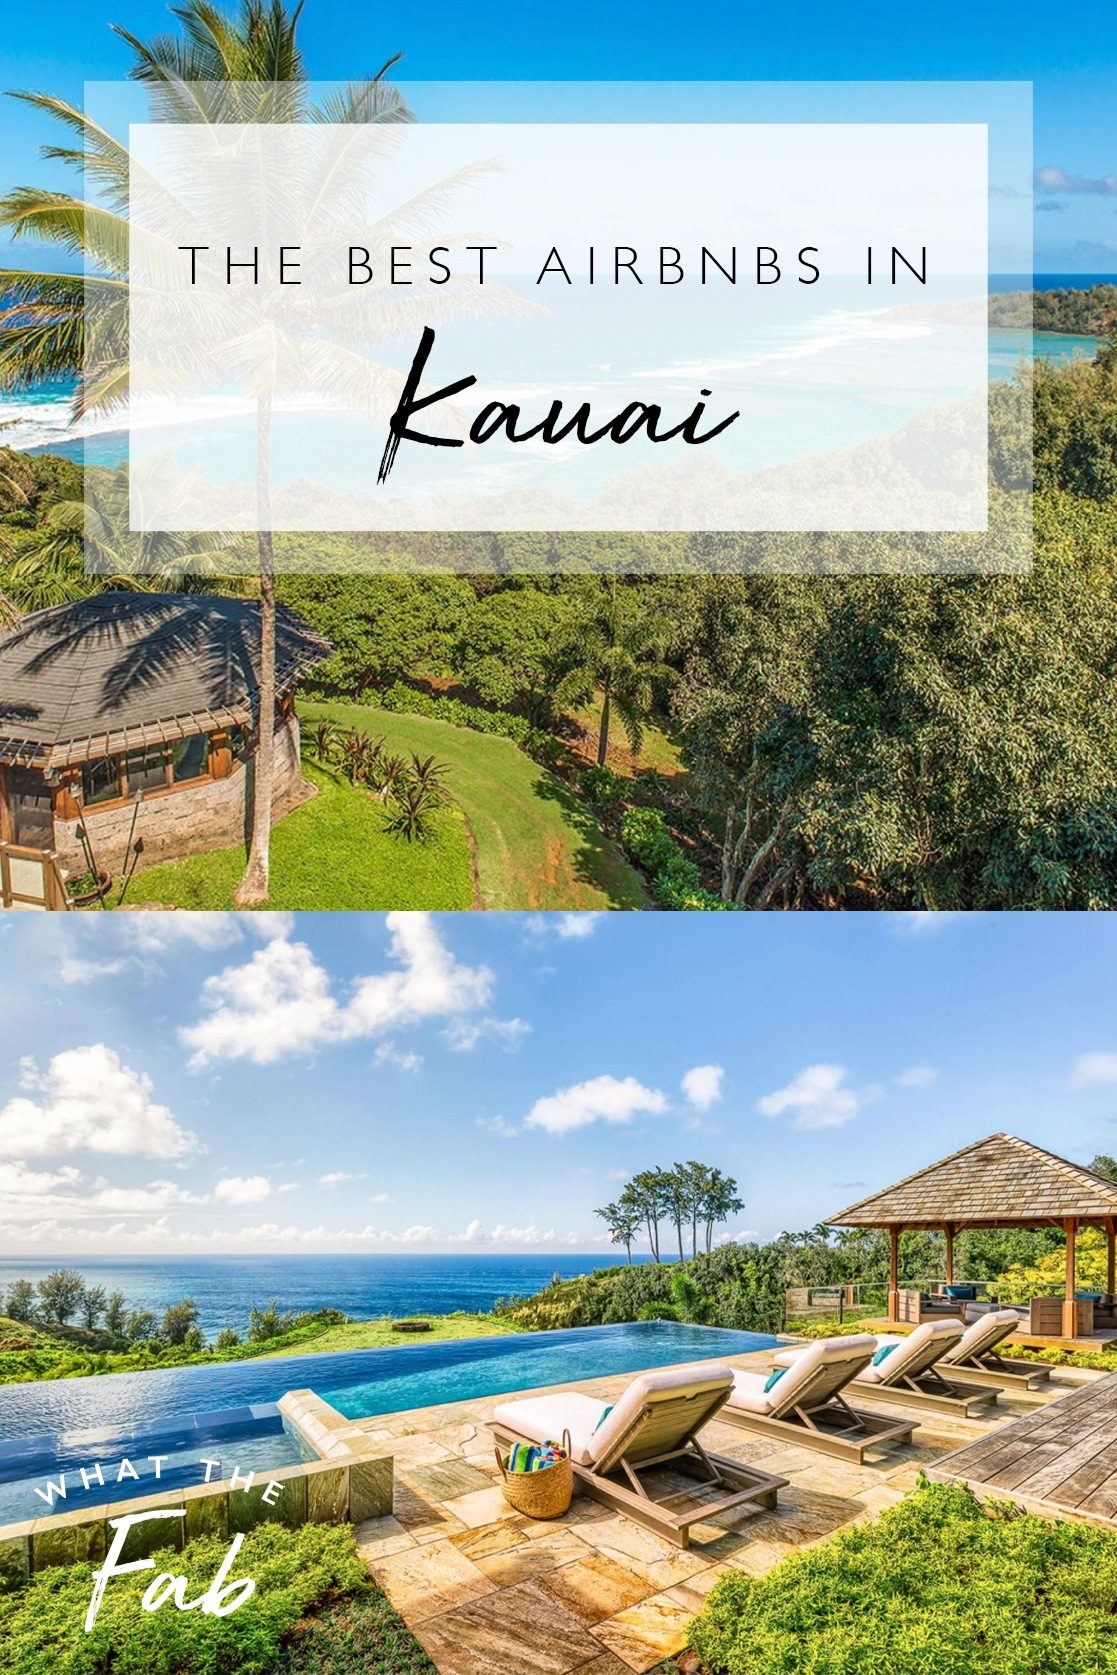 Best Airbnbs in Kauai, by Travel Blogger What The Fab